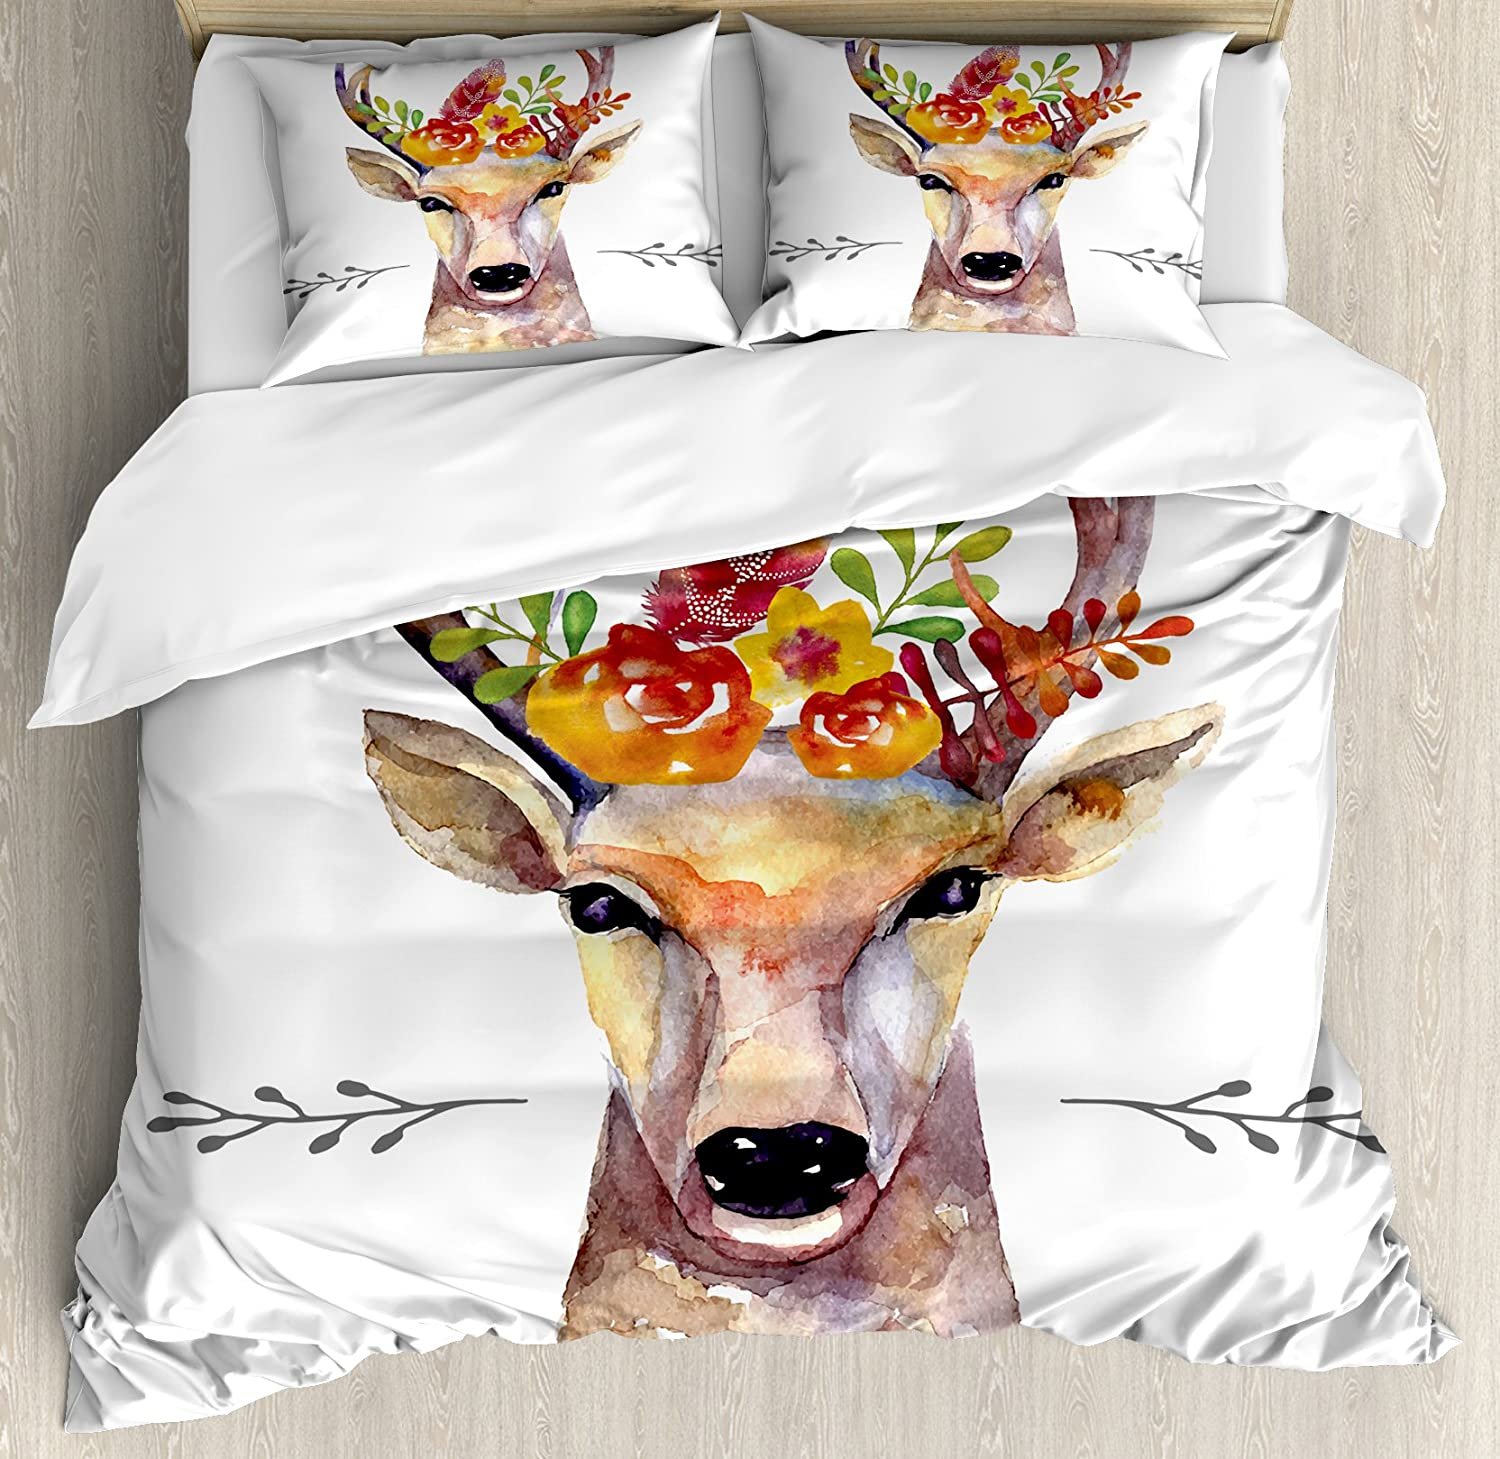 Ambesonne Indie Duvet Cover Set, Deer Portrait in Watercolor Painting Style Boho Flower Bouquet Hipster Rustic Artwork, Decorative 3 Piece Bedding Set with 2 Pillow Shams, Queen Size, White Orange